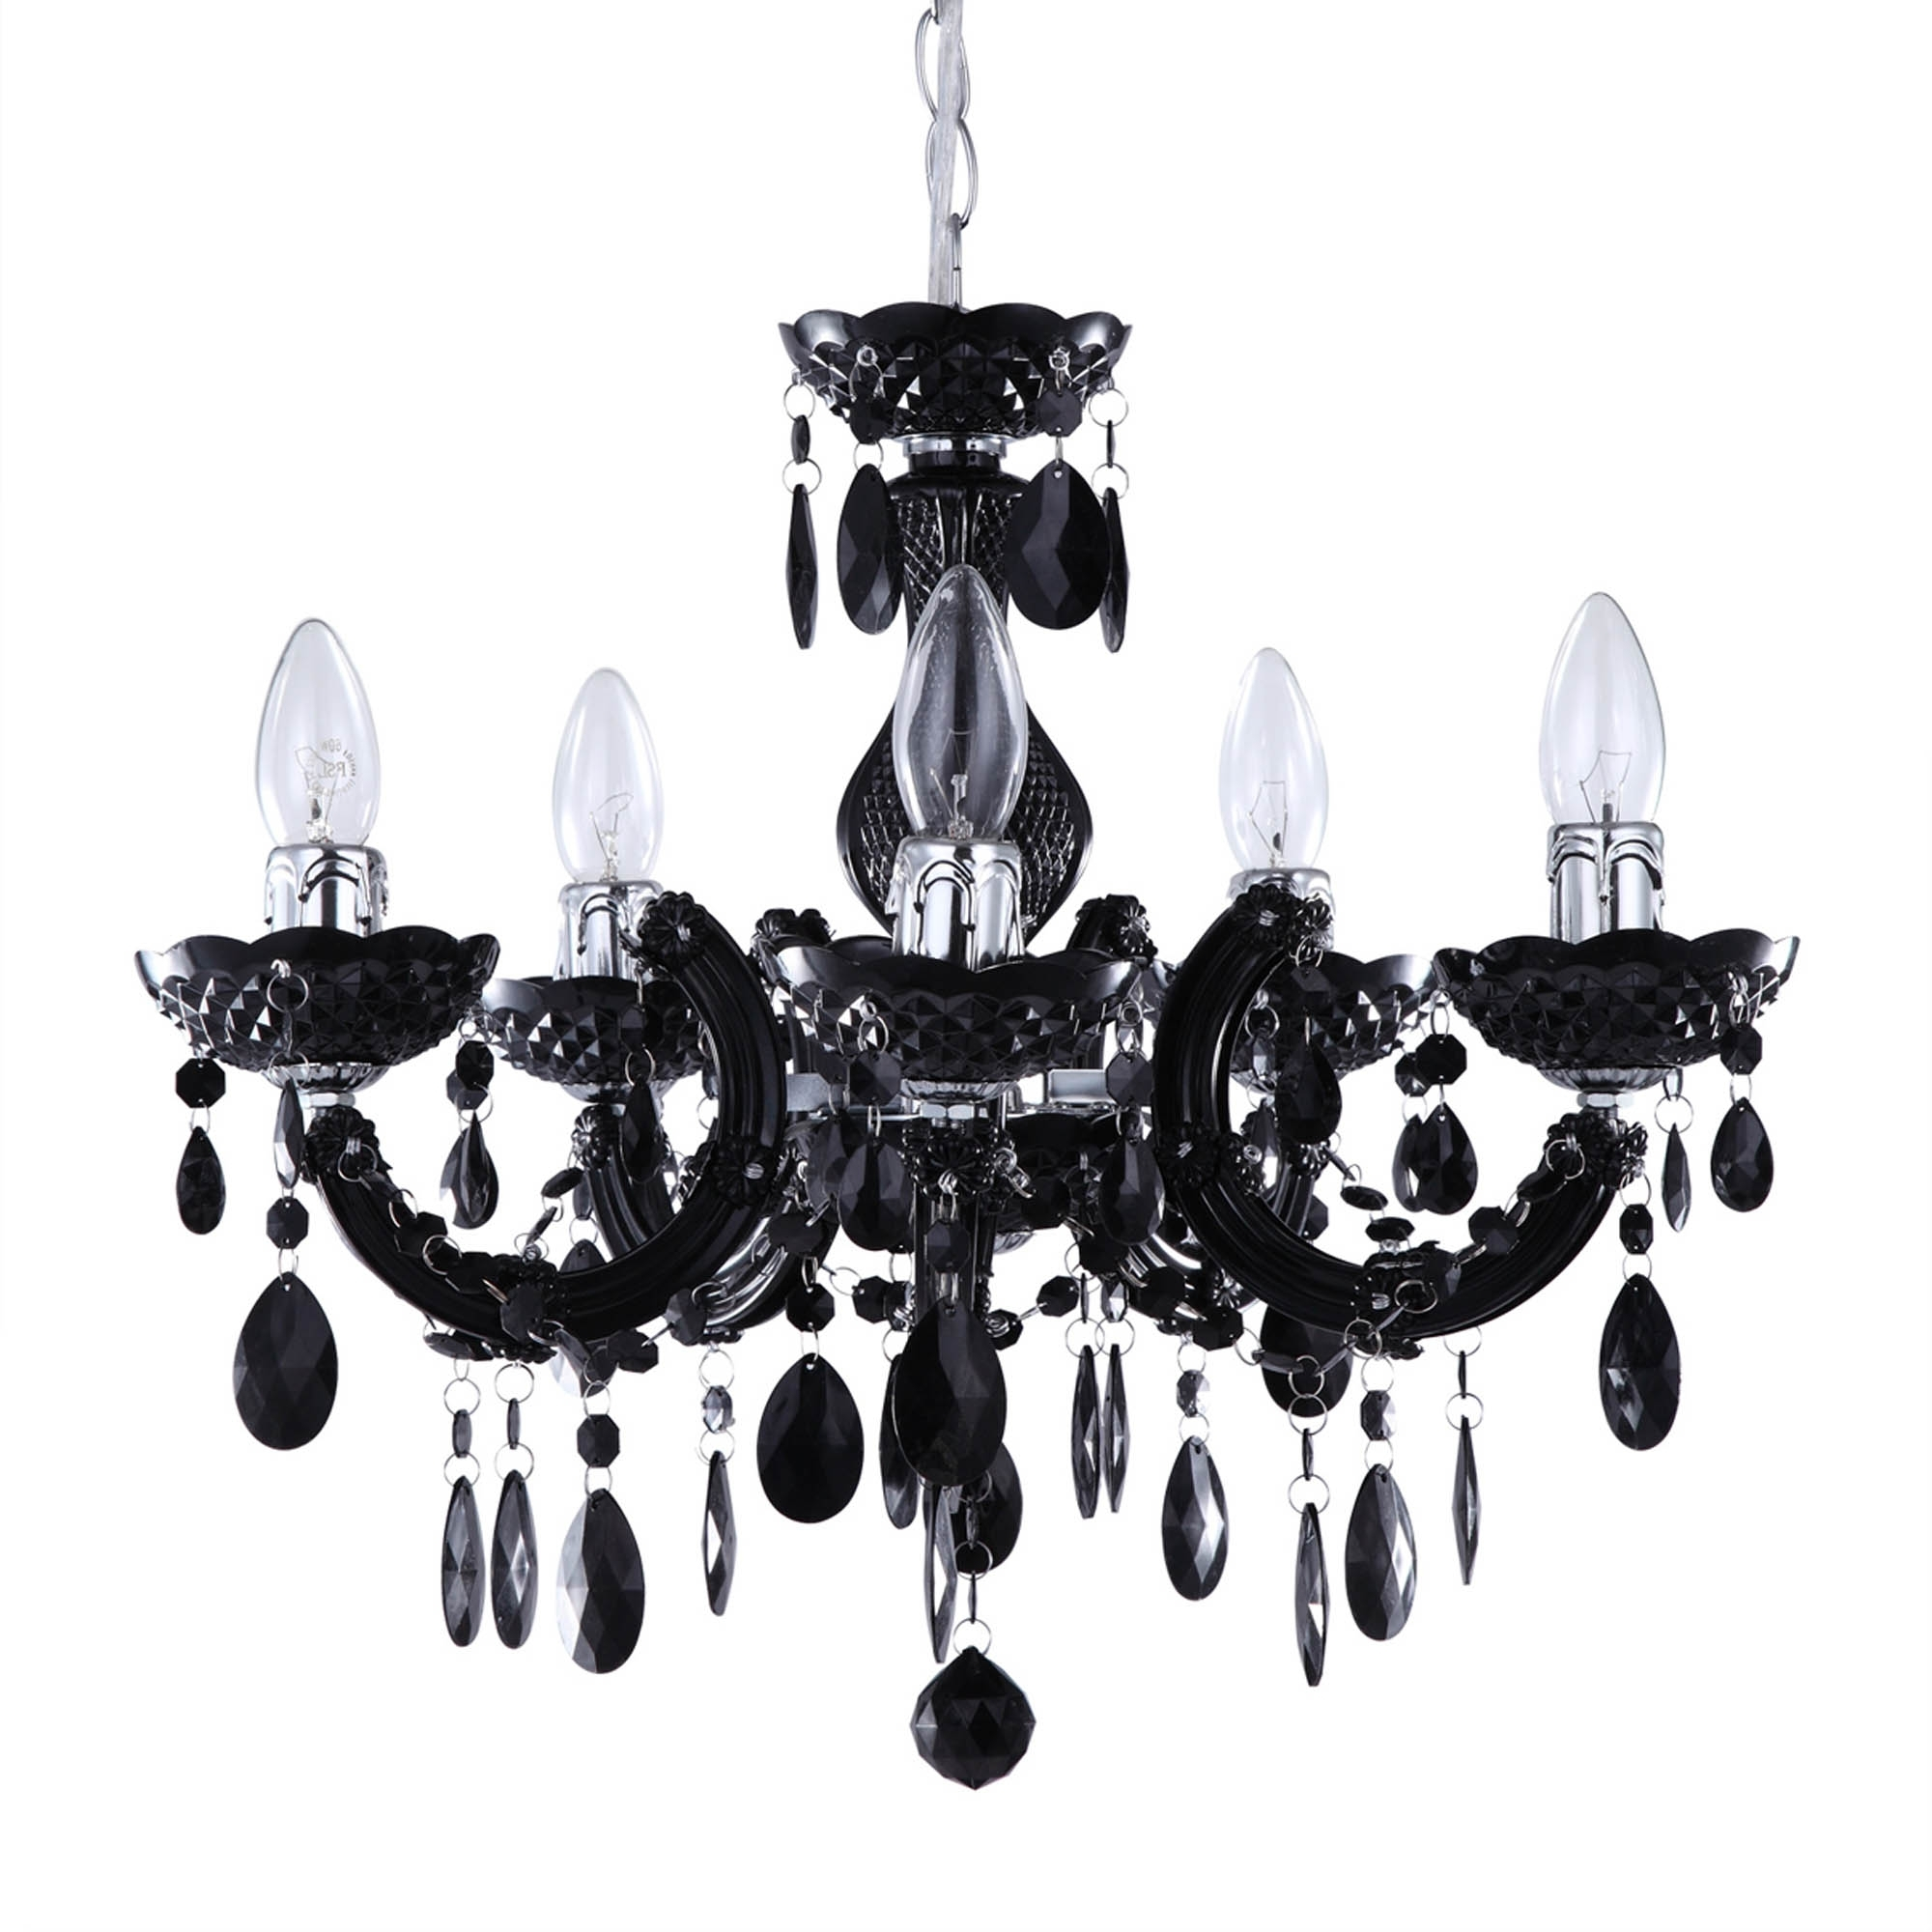 Newest Large Black Chandelier With Regard To Marie Therese Black Chandelier (View 7 of 15)